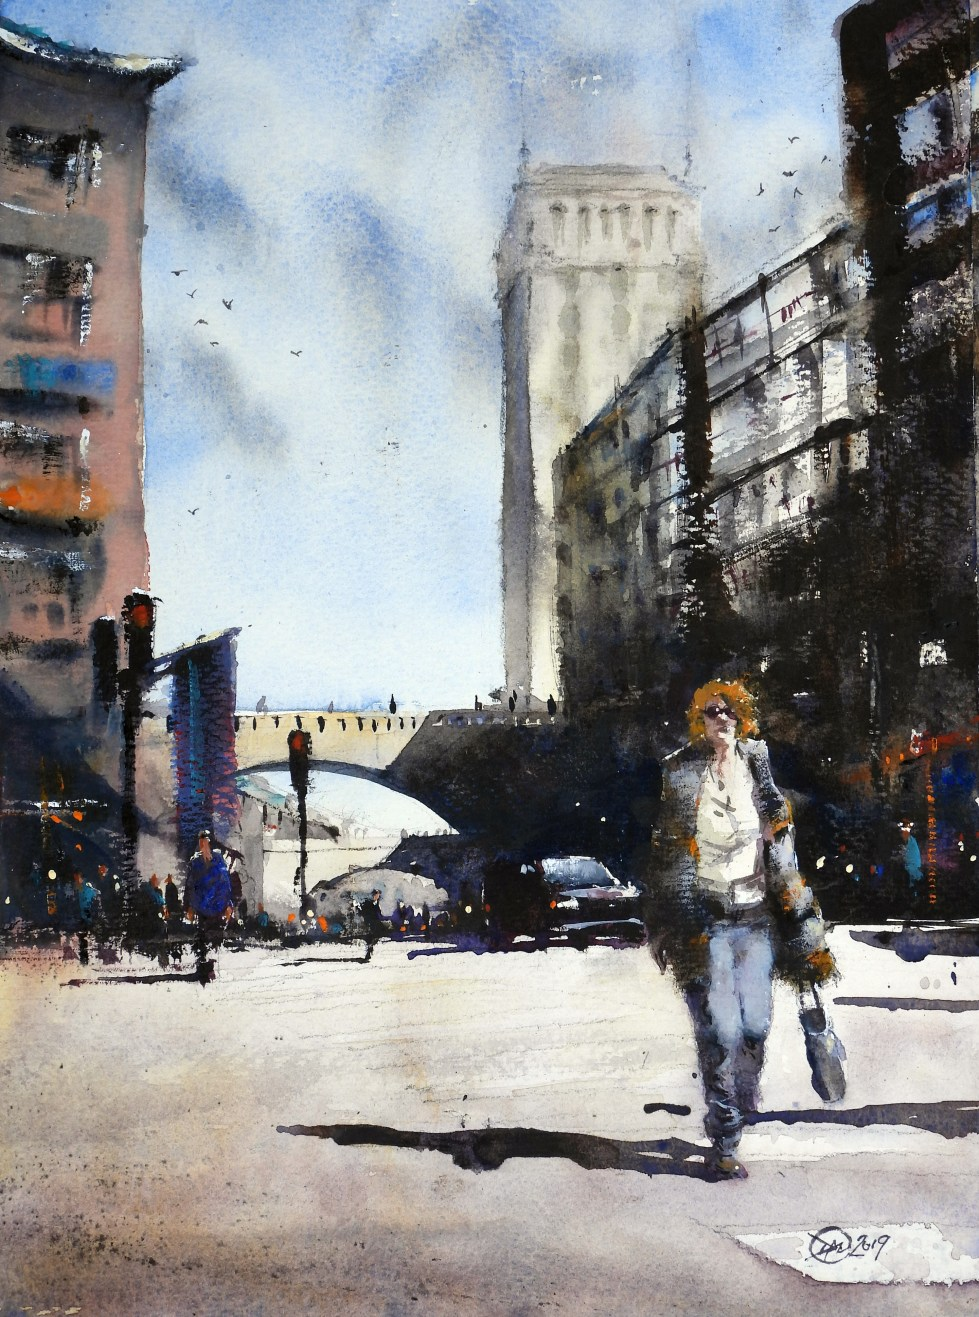 The Crossing - A watercolour by David Meldrum